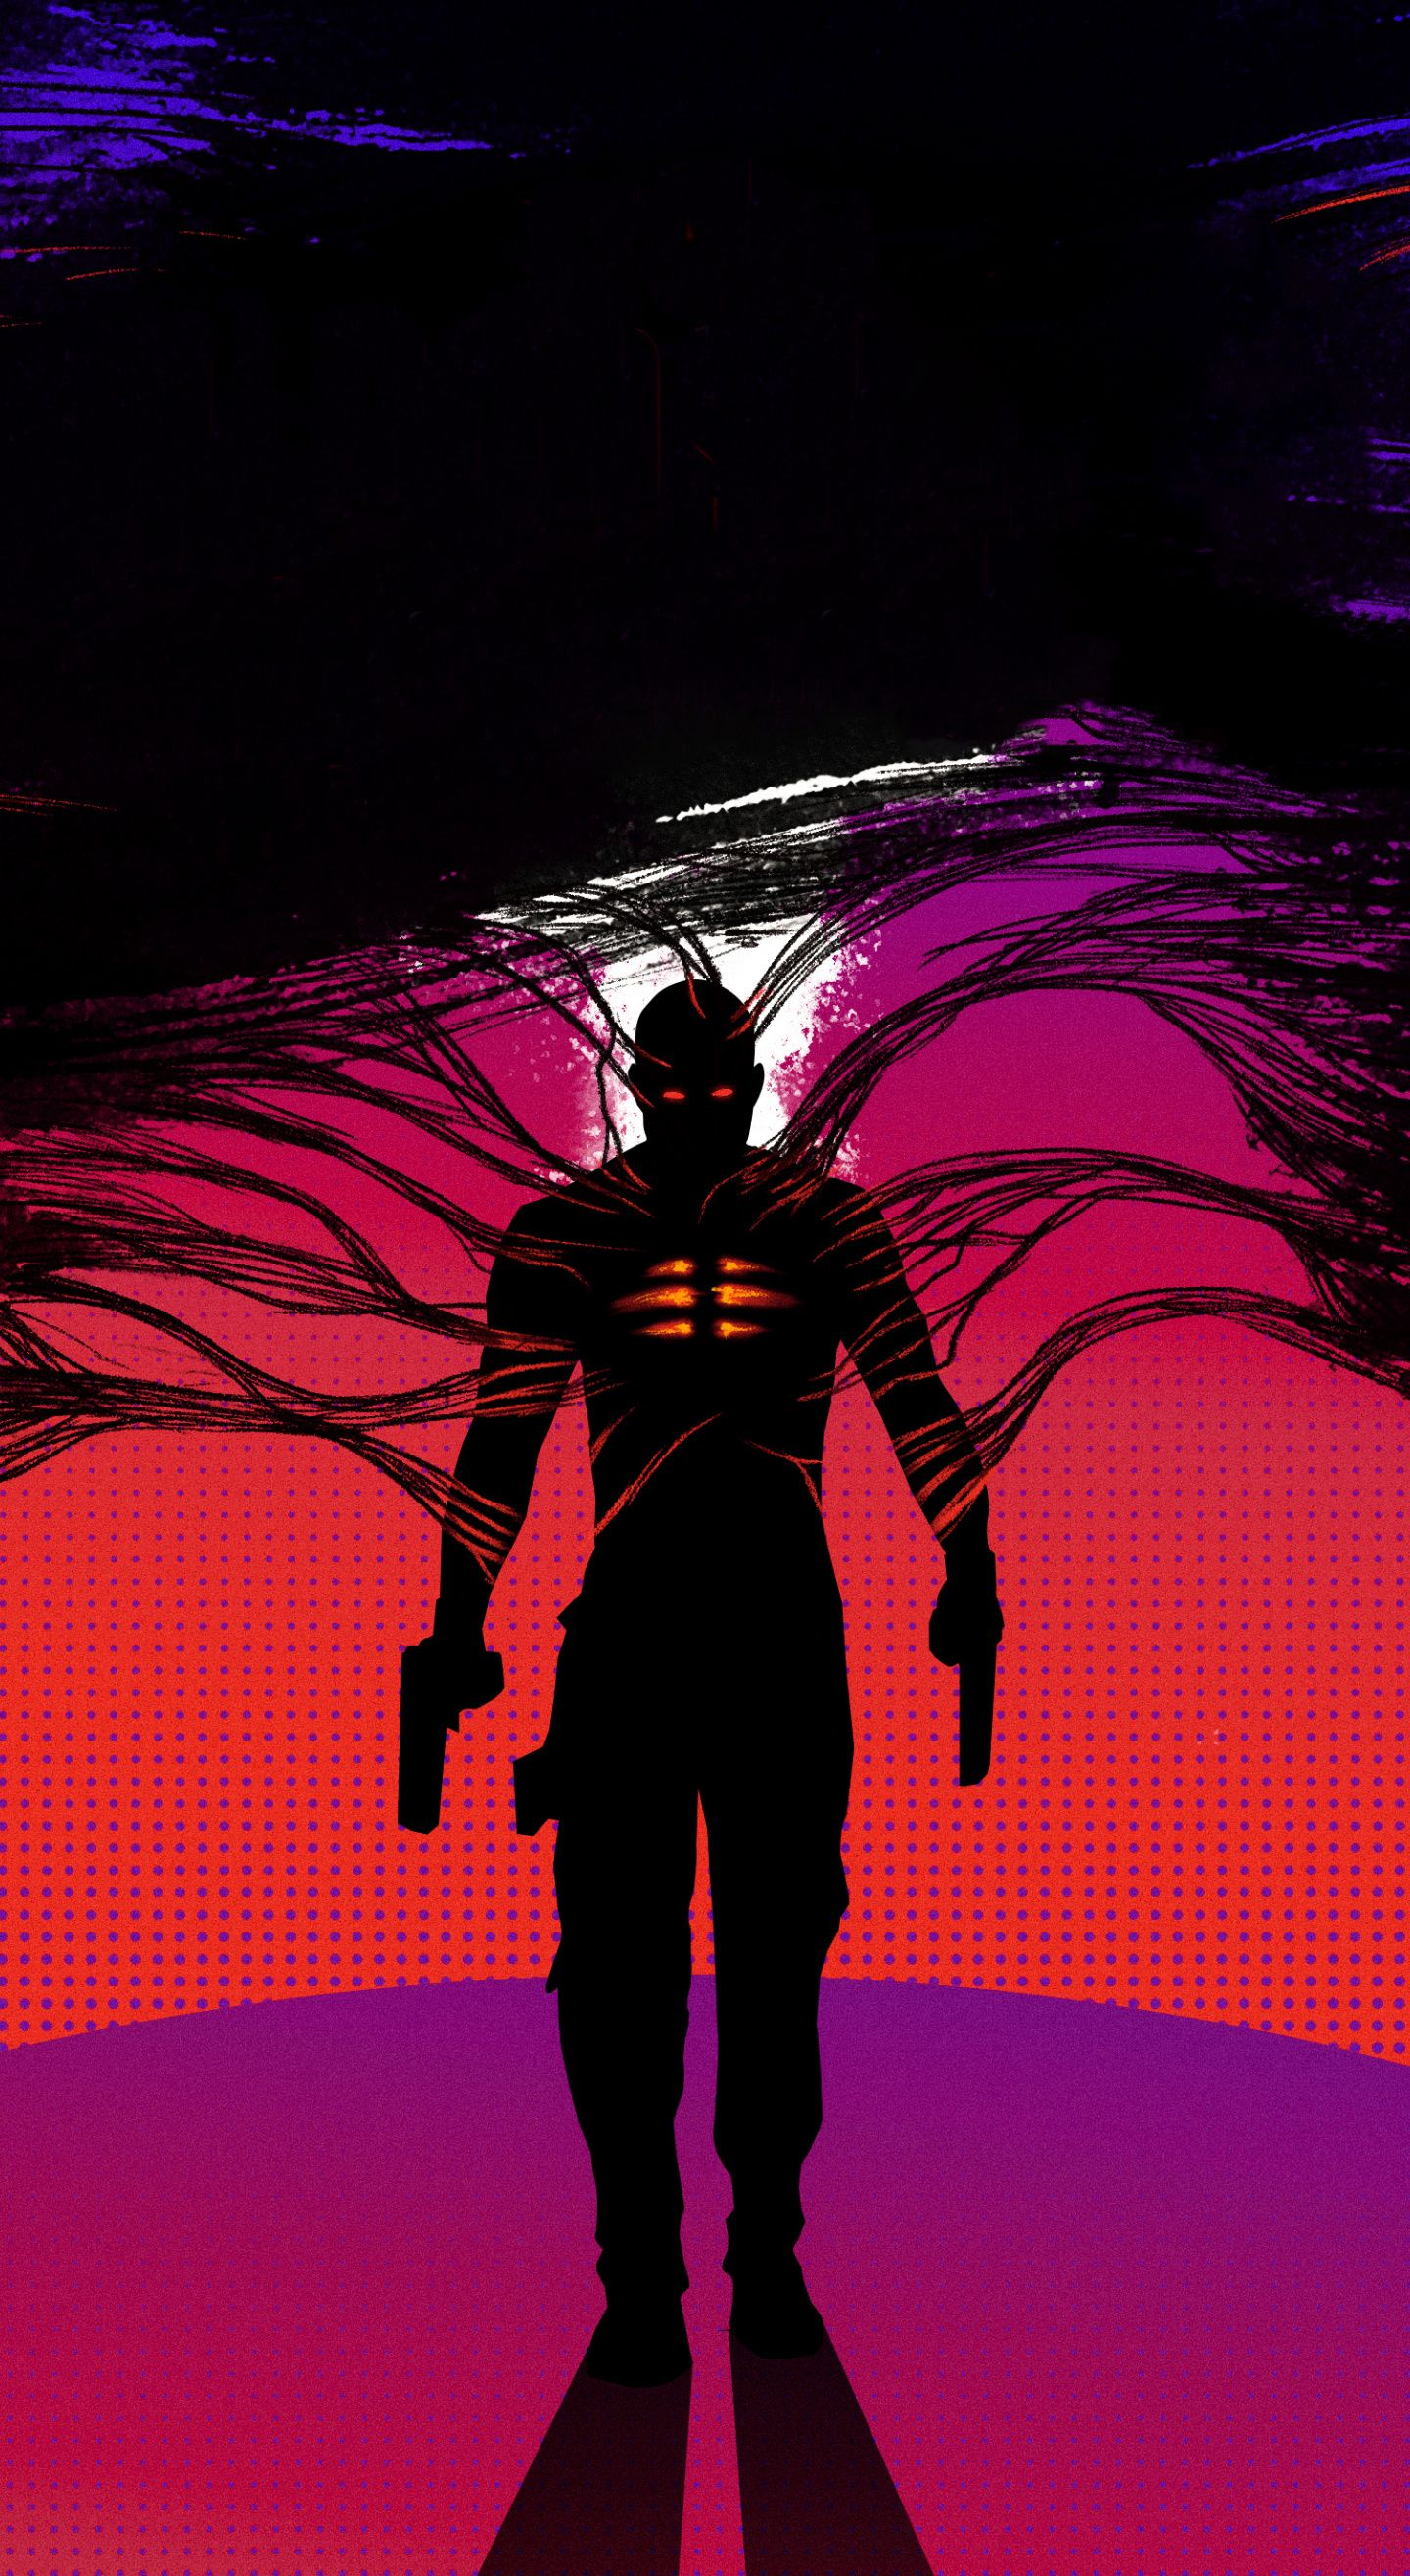 1440x2630 2020 Movie Bloodshot Silhouette Art Wallpaper In 2020 2020 Movies Movie Wallpapers Movies